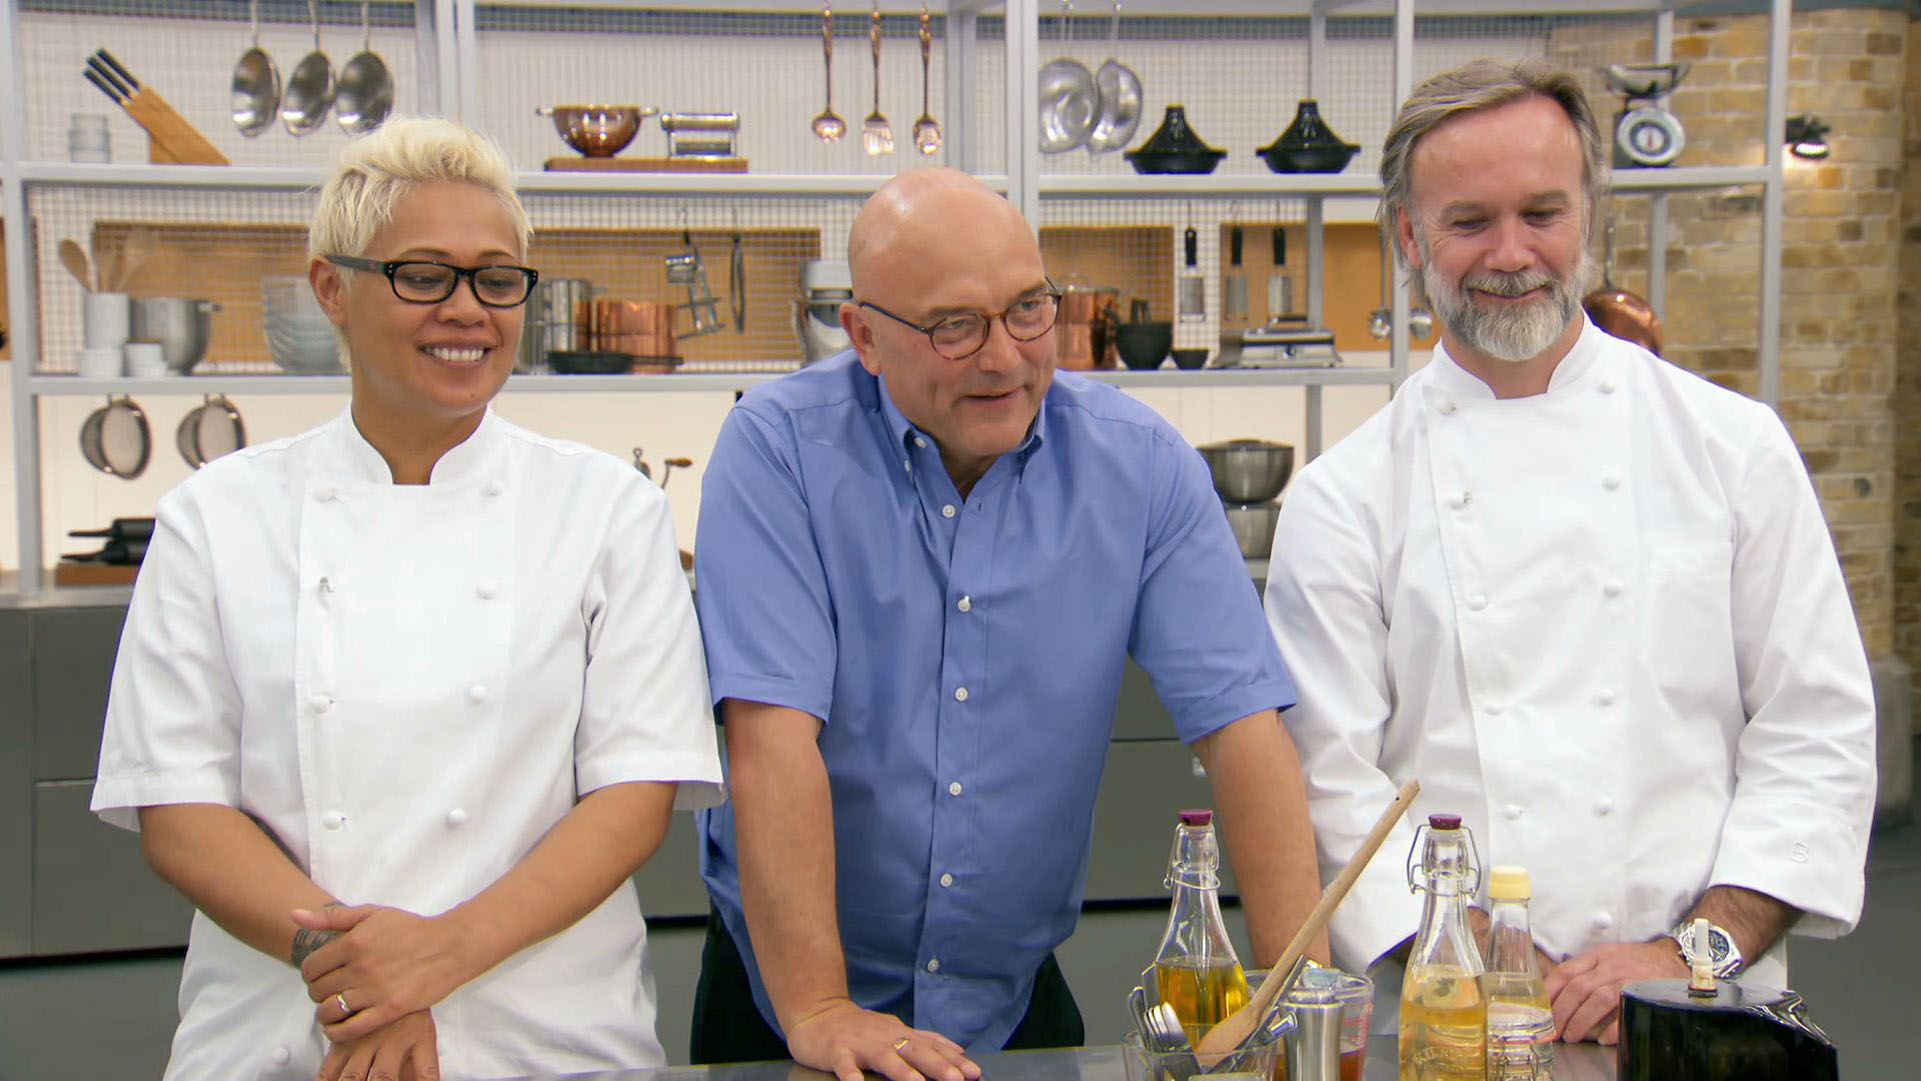 Masterchef: The Professionals 2018 judges Marcus Wareing, Monica Galetti, and Gregg Wallace on the BBC Two television series